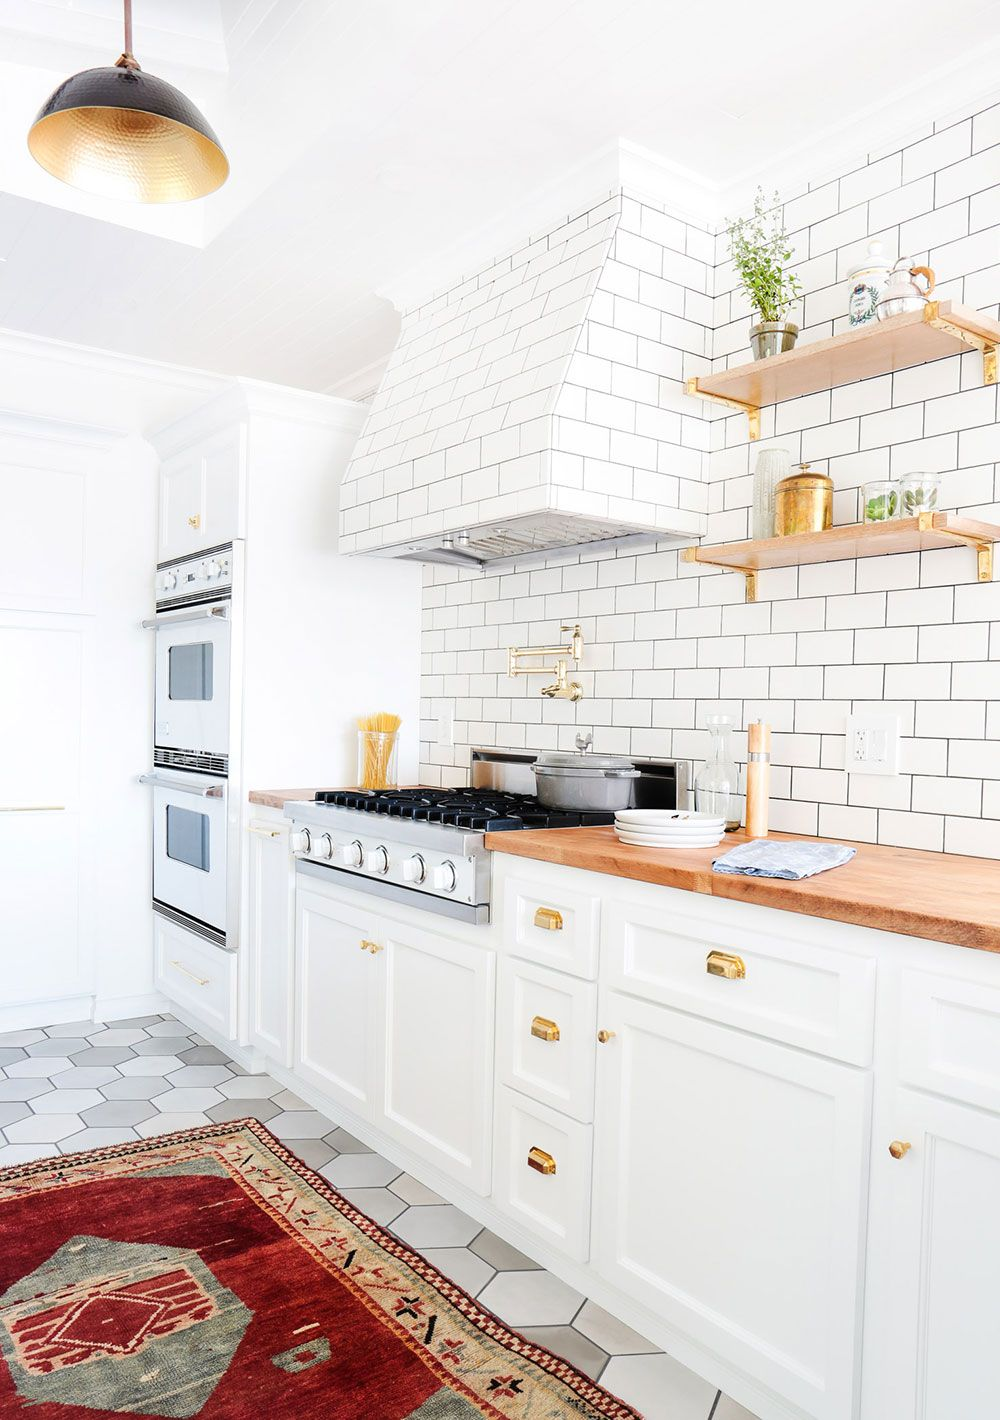 A cool LA home tour from Homepolish | Butcher blocks, Kitchens and ...